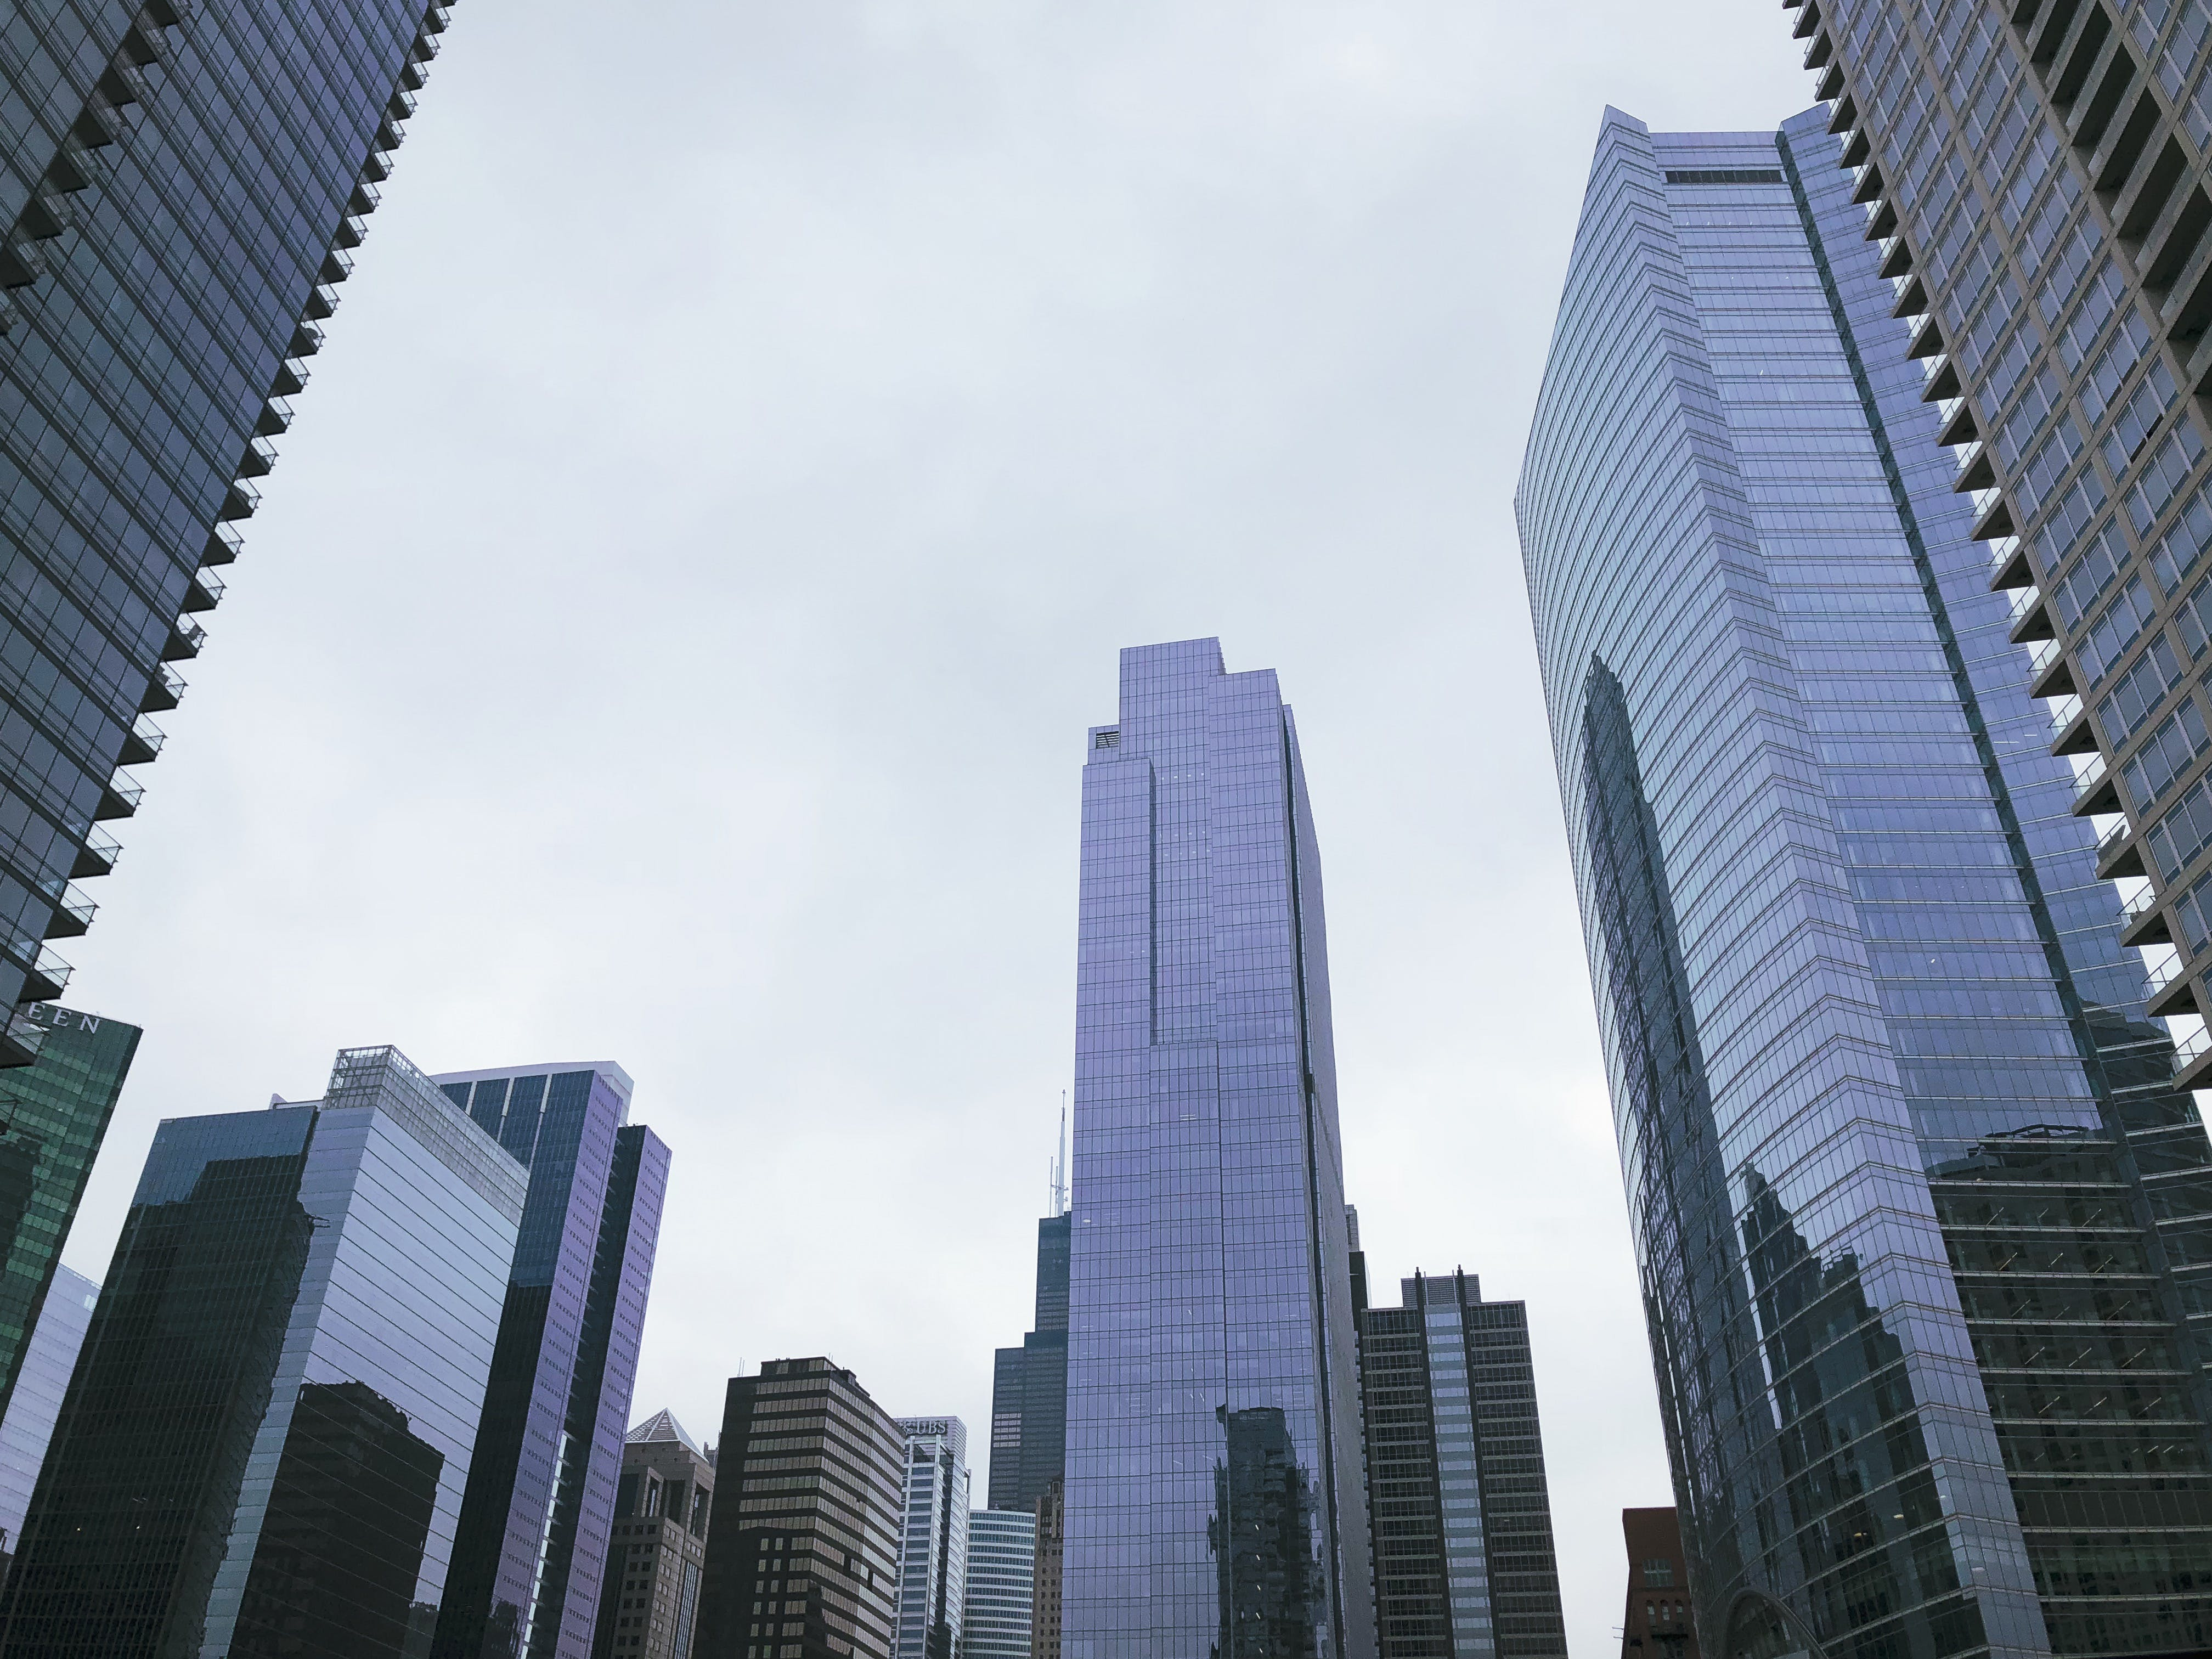 Low Angle Shot Photography of Tall Buildings